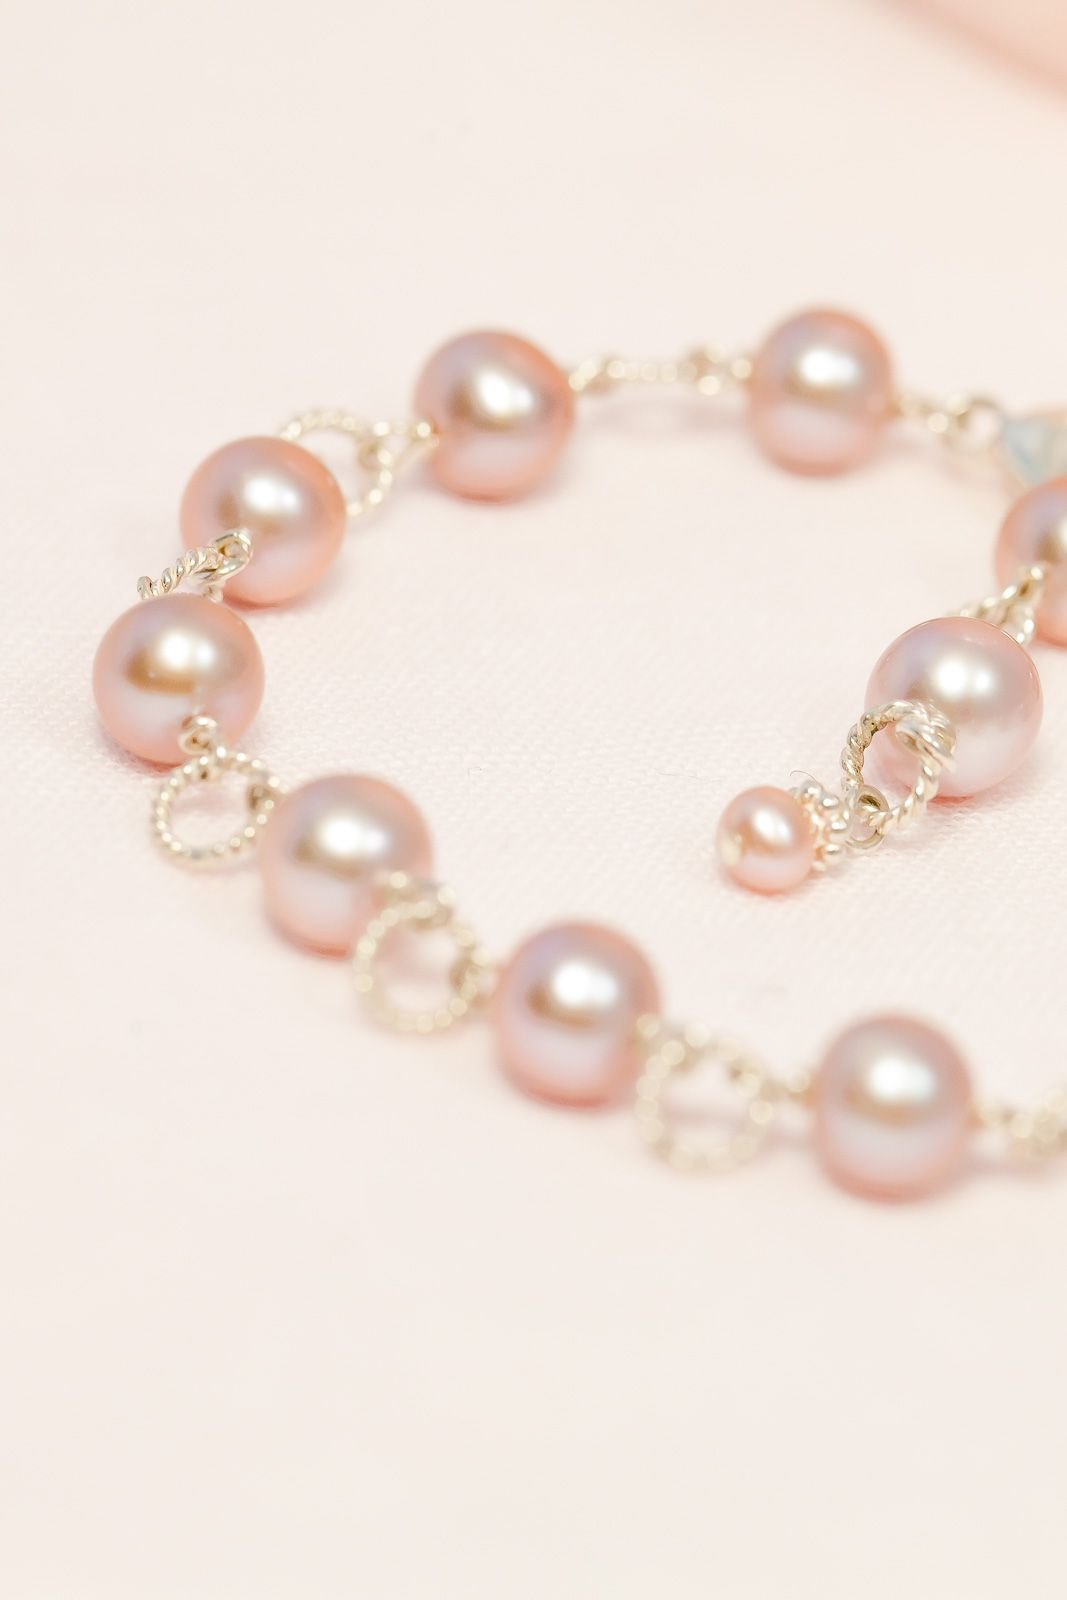 pearls asp p girls real with card christening jewels bracelet choice and